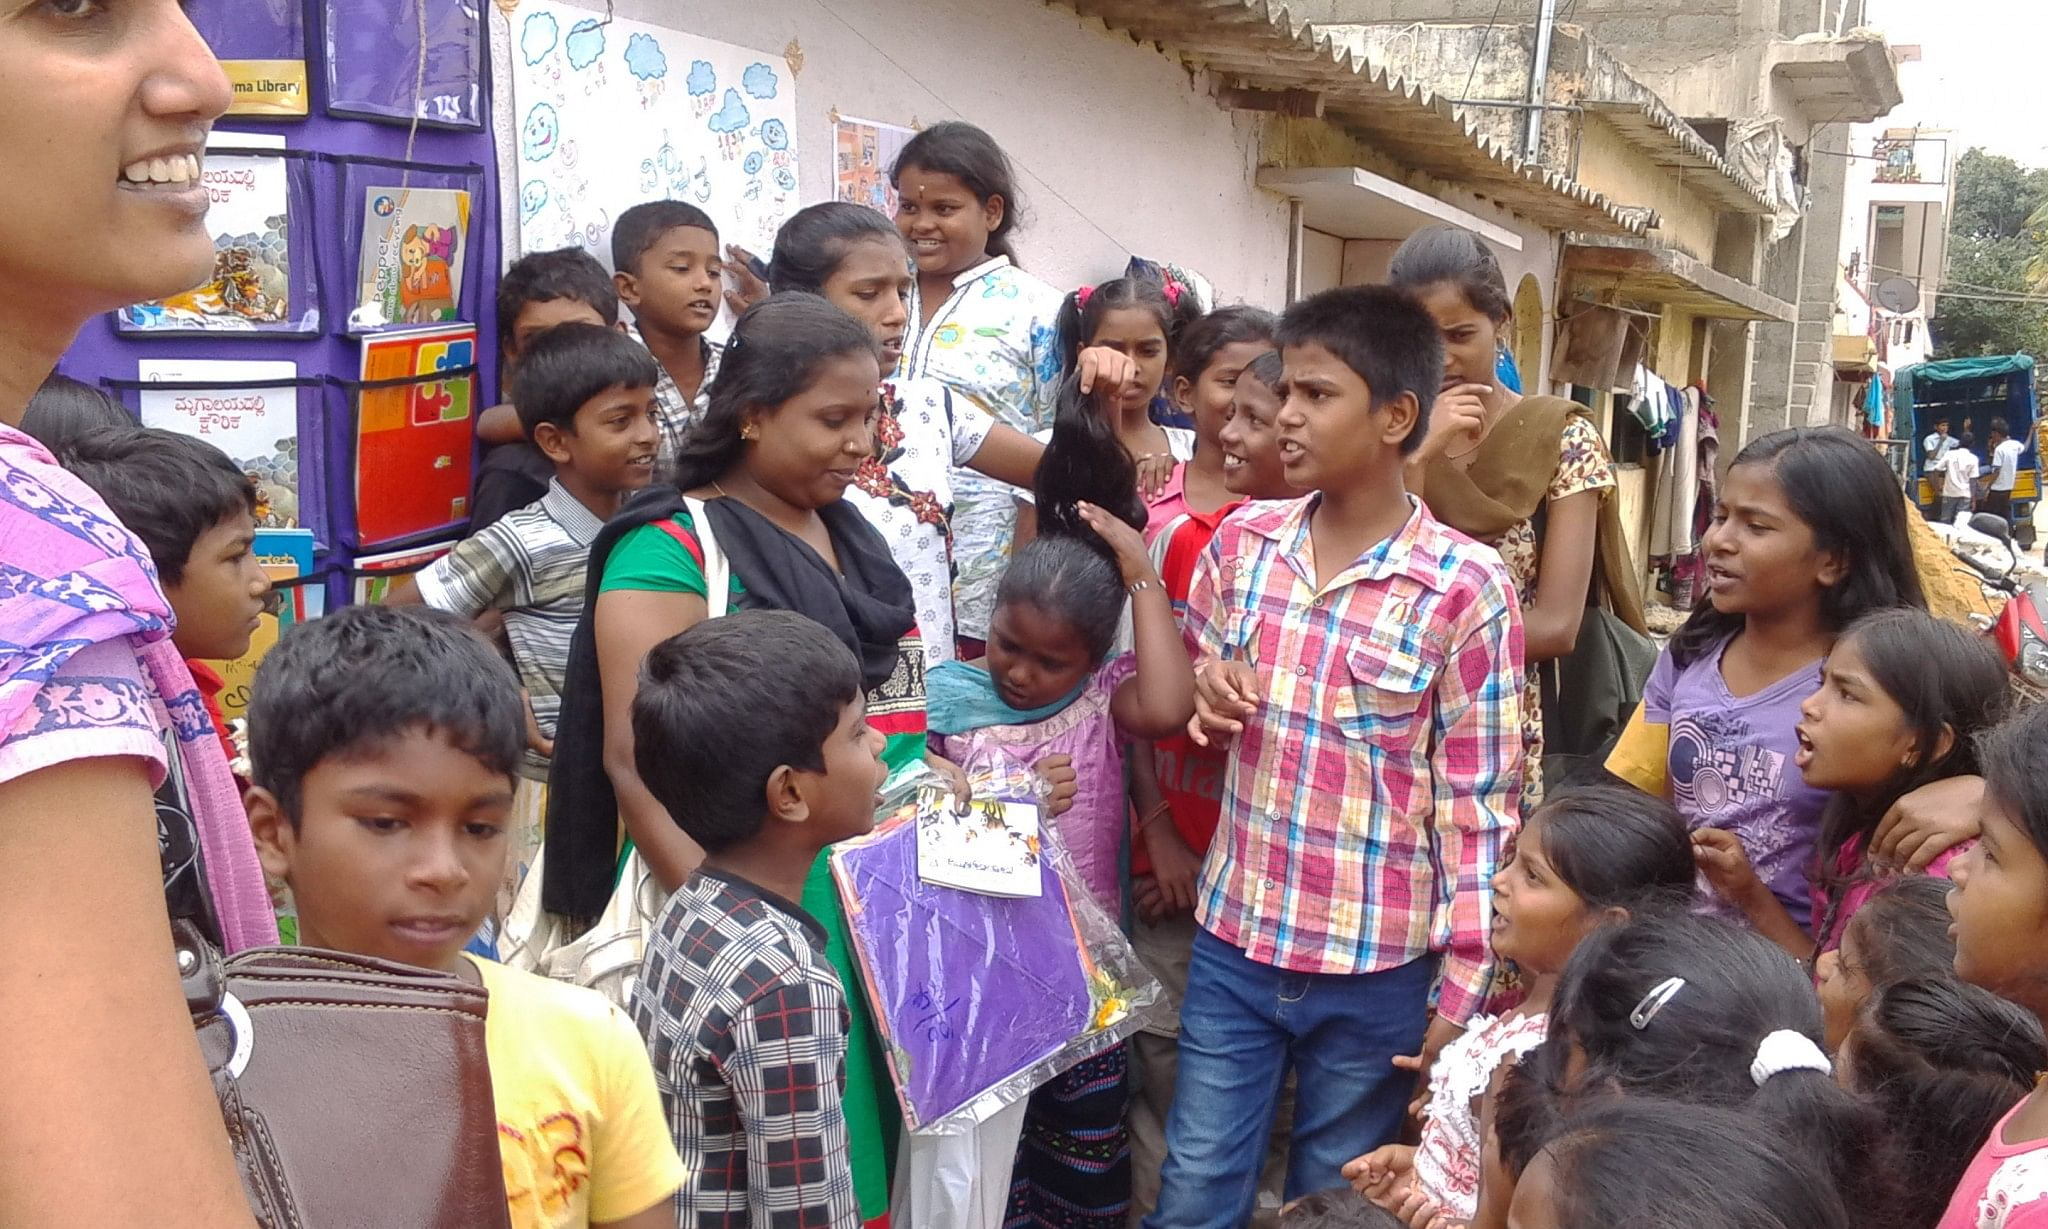 The initiative received a great response and engagement from Kids.